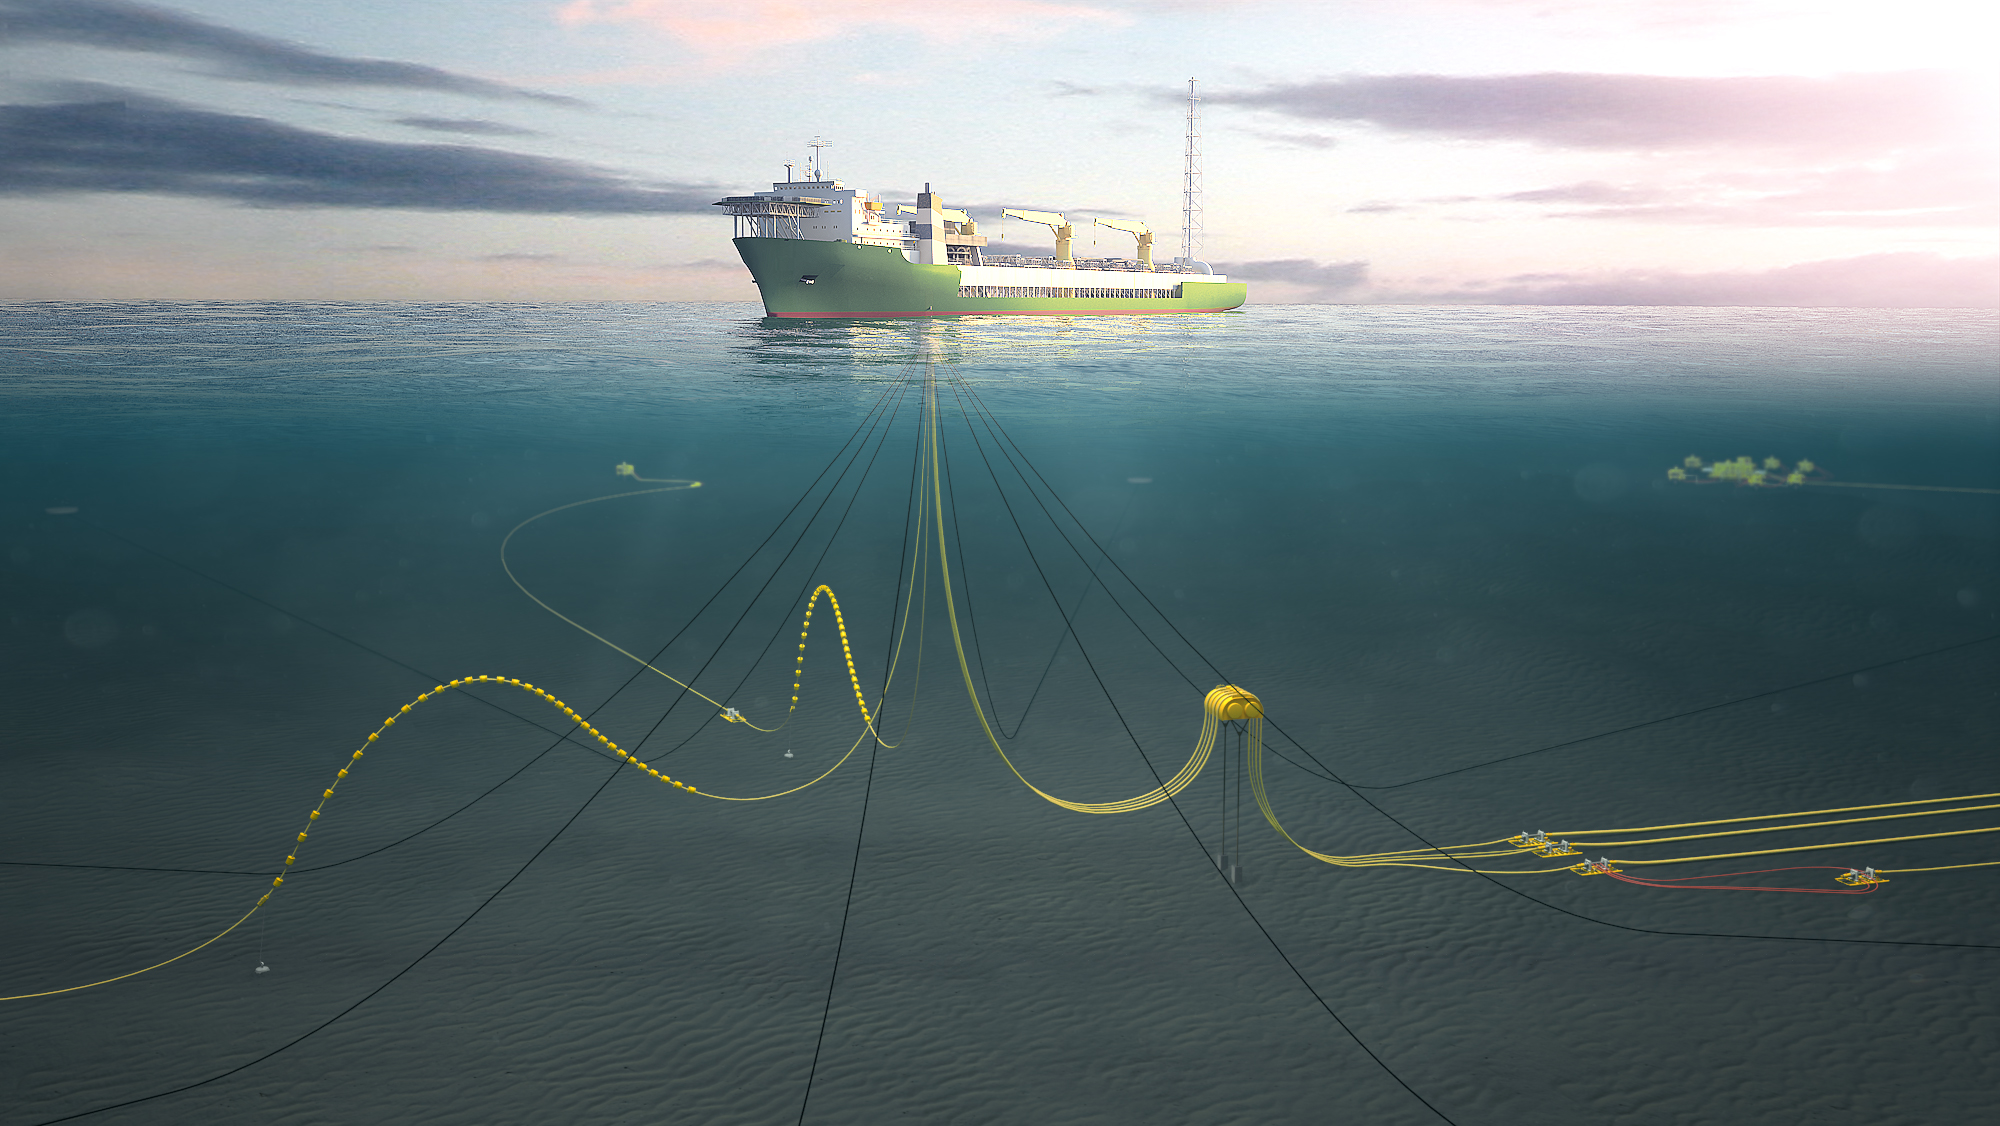 Mooring Line Monitoring Reduce Costs And Simplify Operations